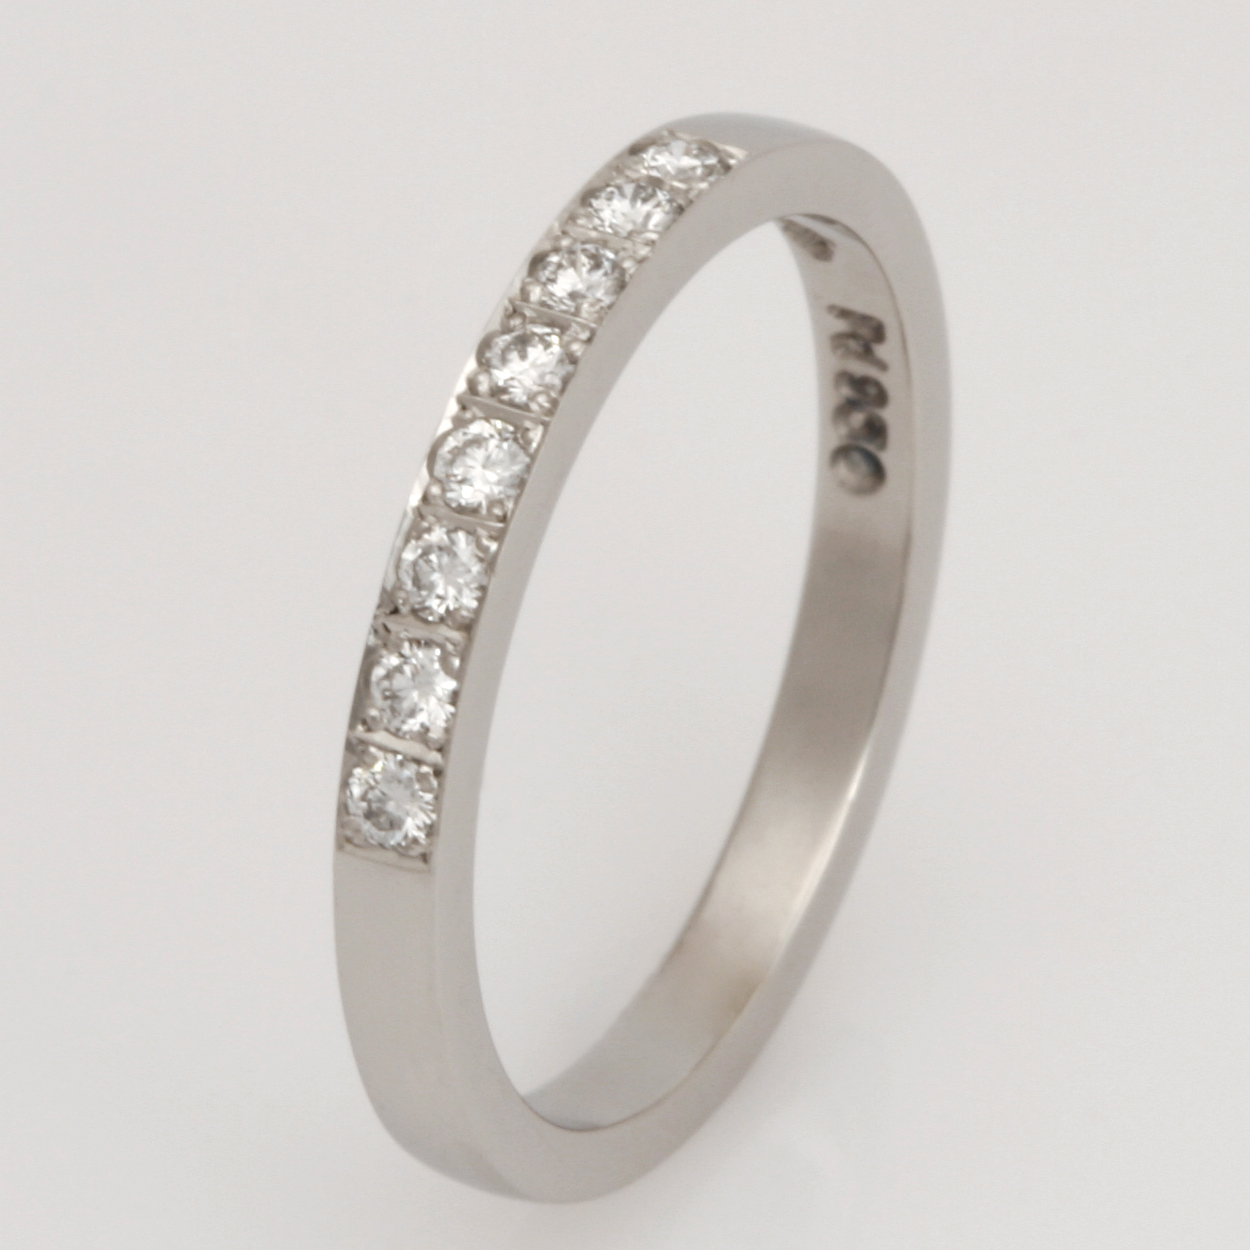 Handmade ladies palladium diamond wedding ring